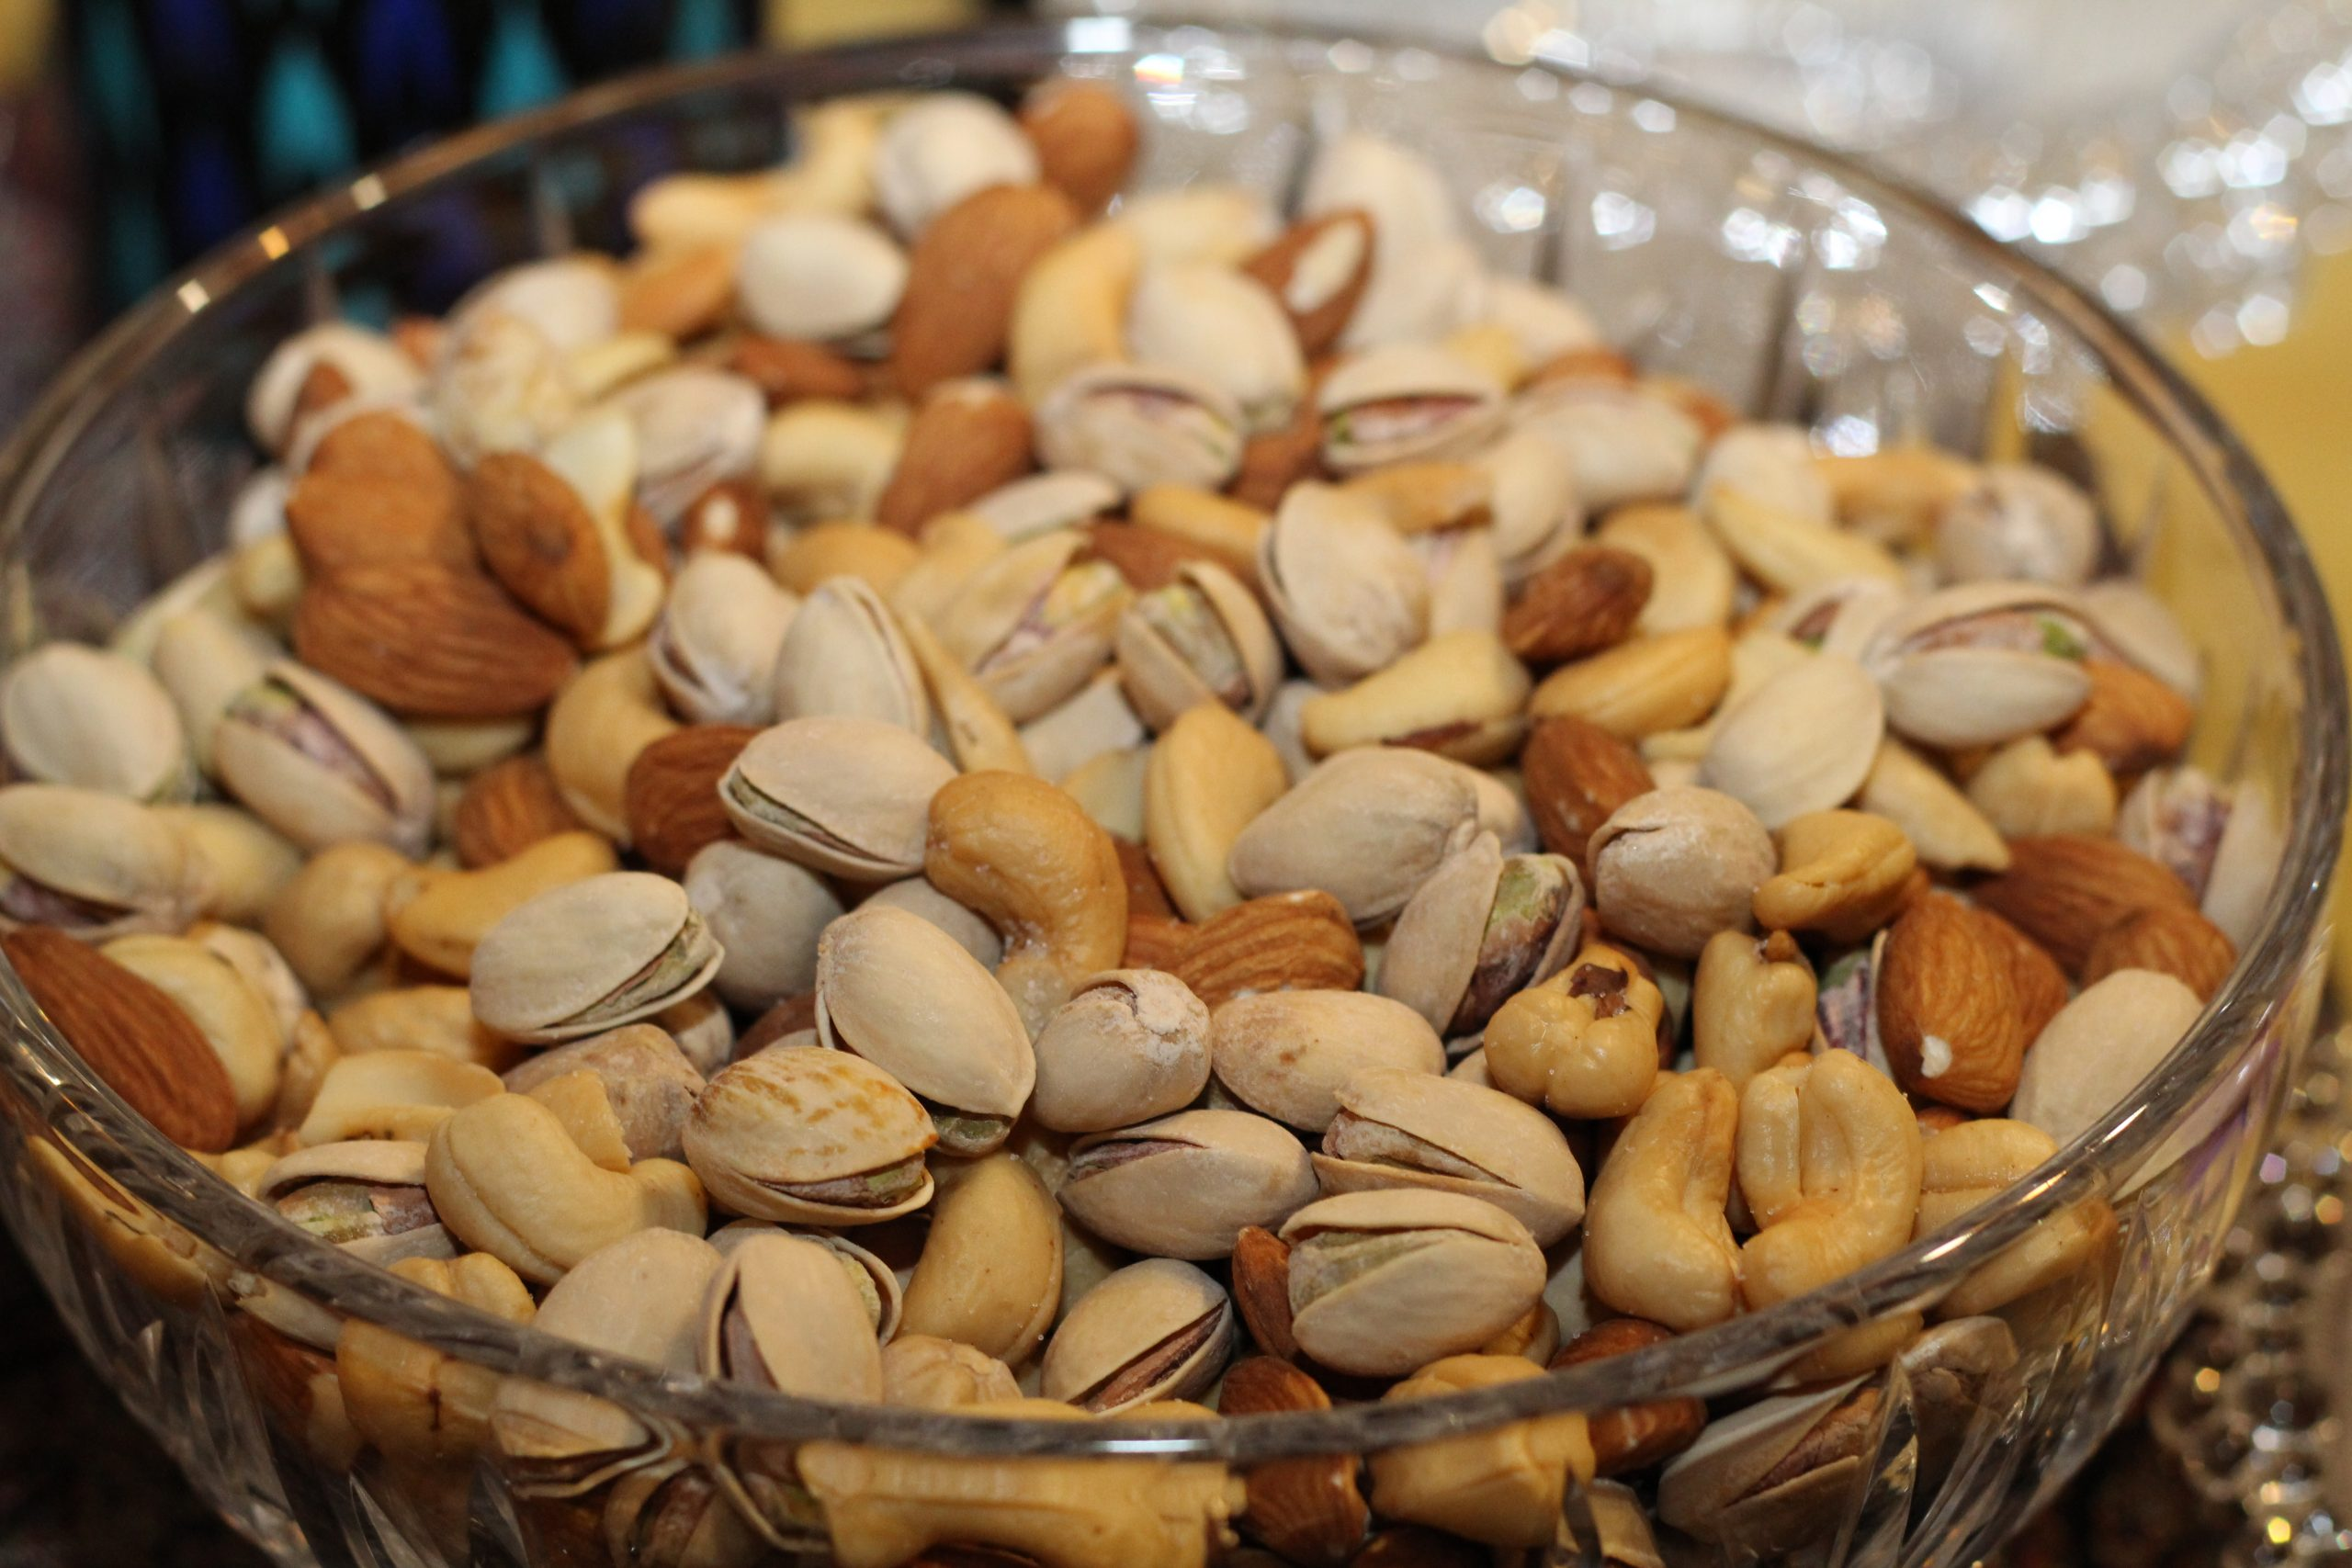 A glass bowl is full of Nuts | Breast size reduction